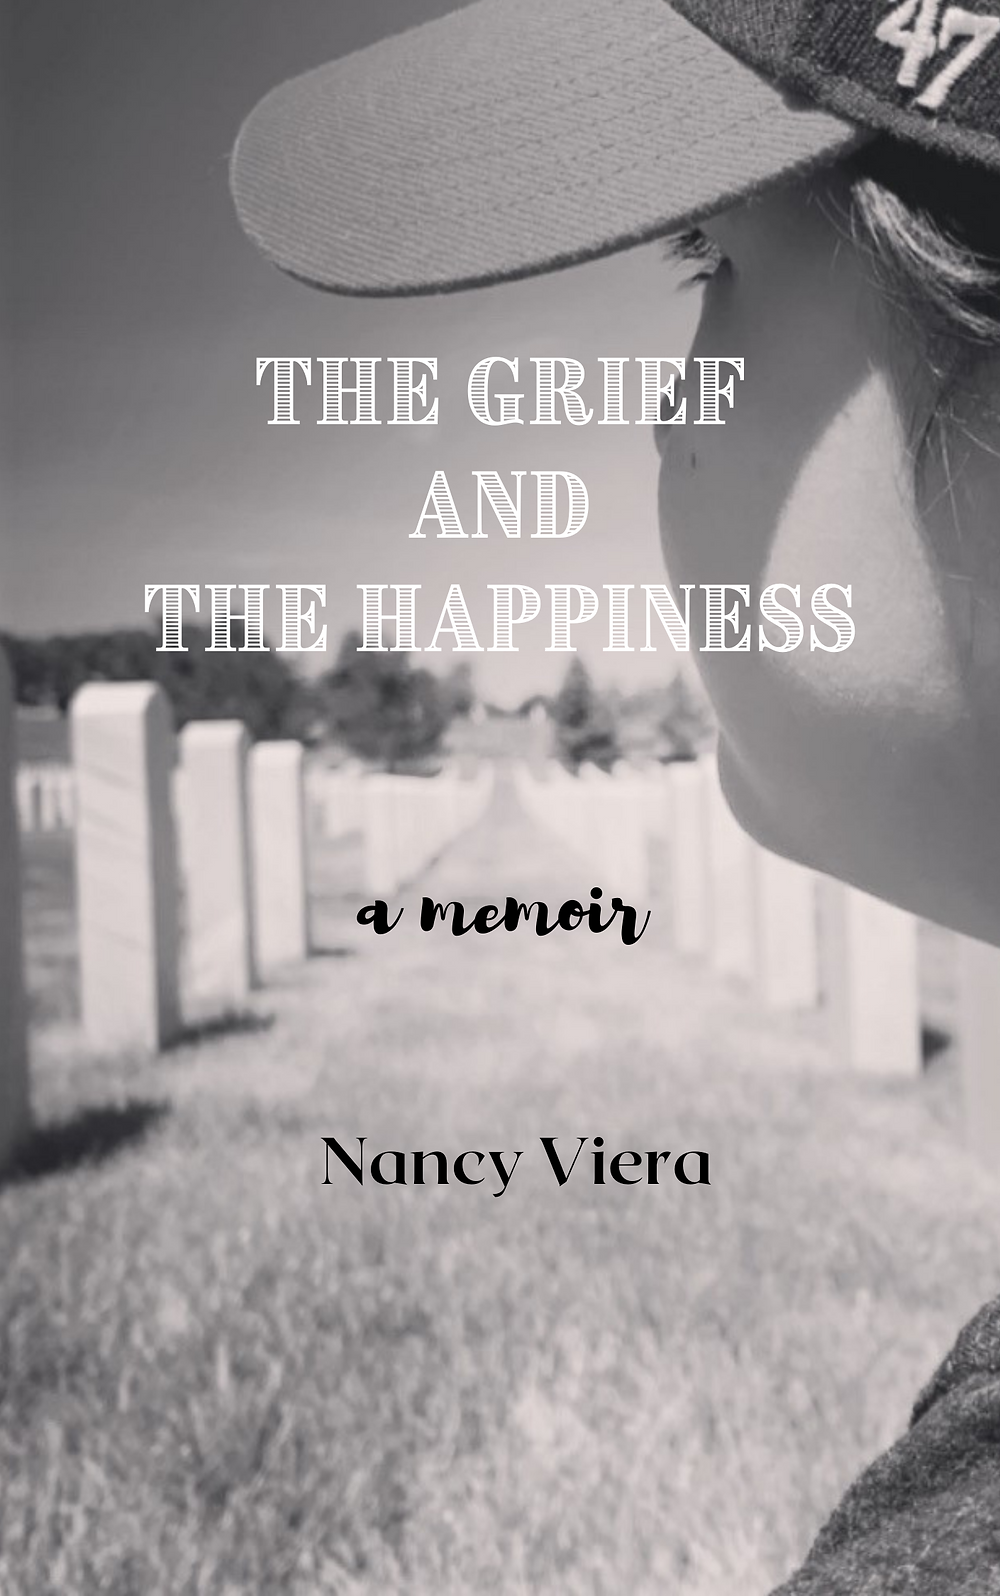 Pick up Nancy's book The Grief and The Happiness: A Memoir, now on Amazon. Find healing through the trauma, and know that you are not alone.